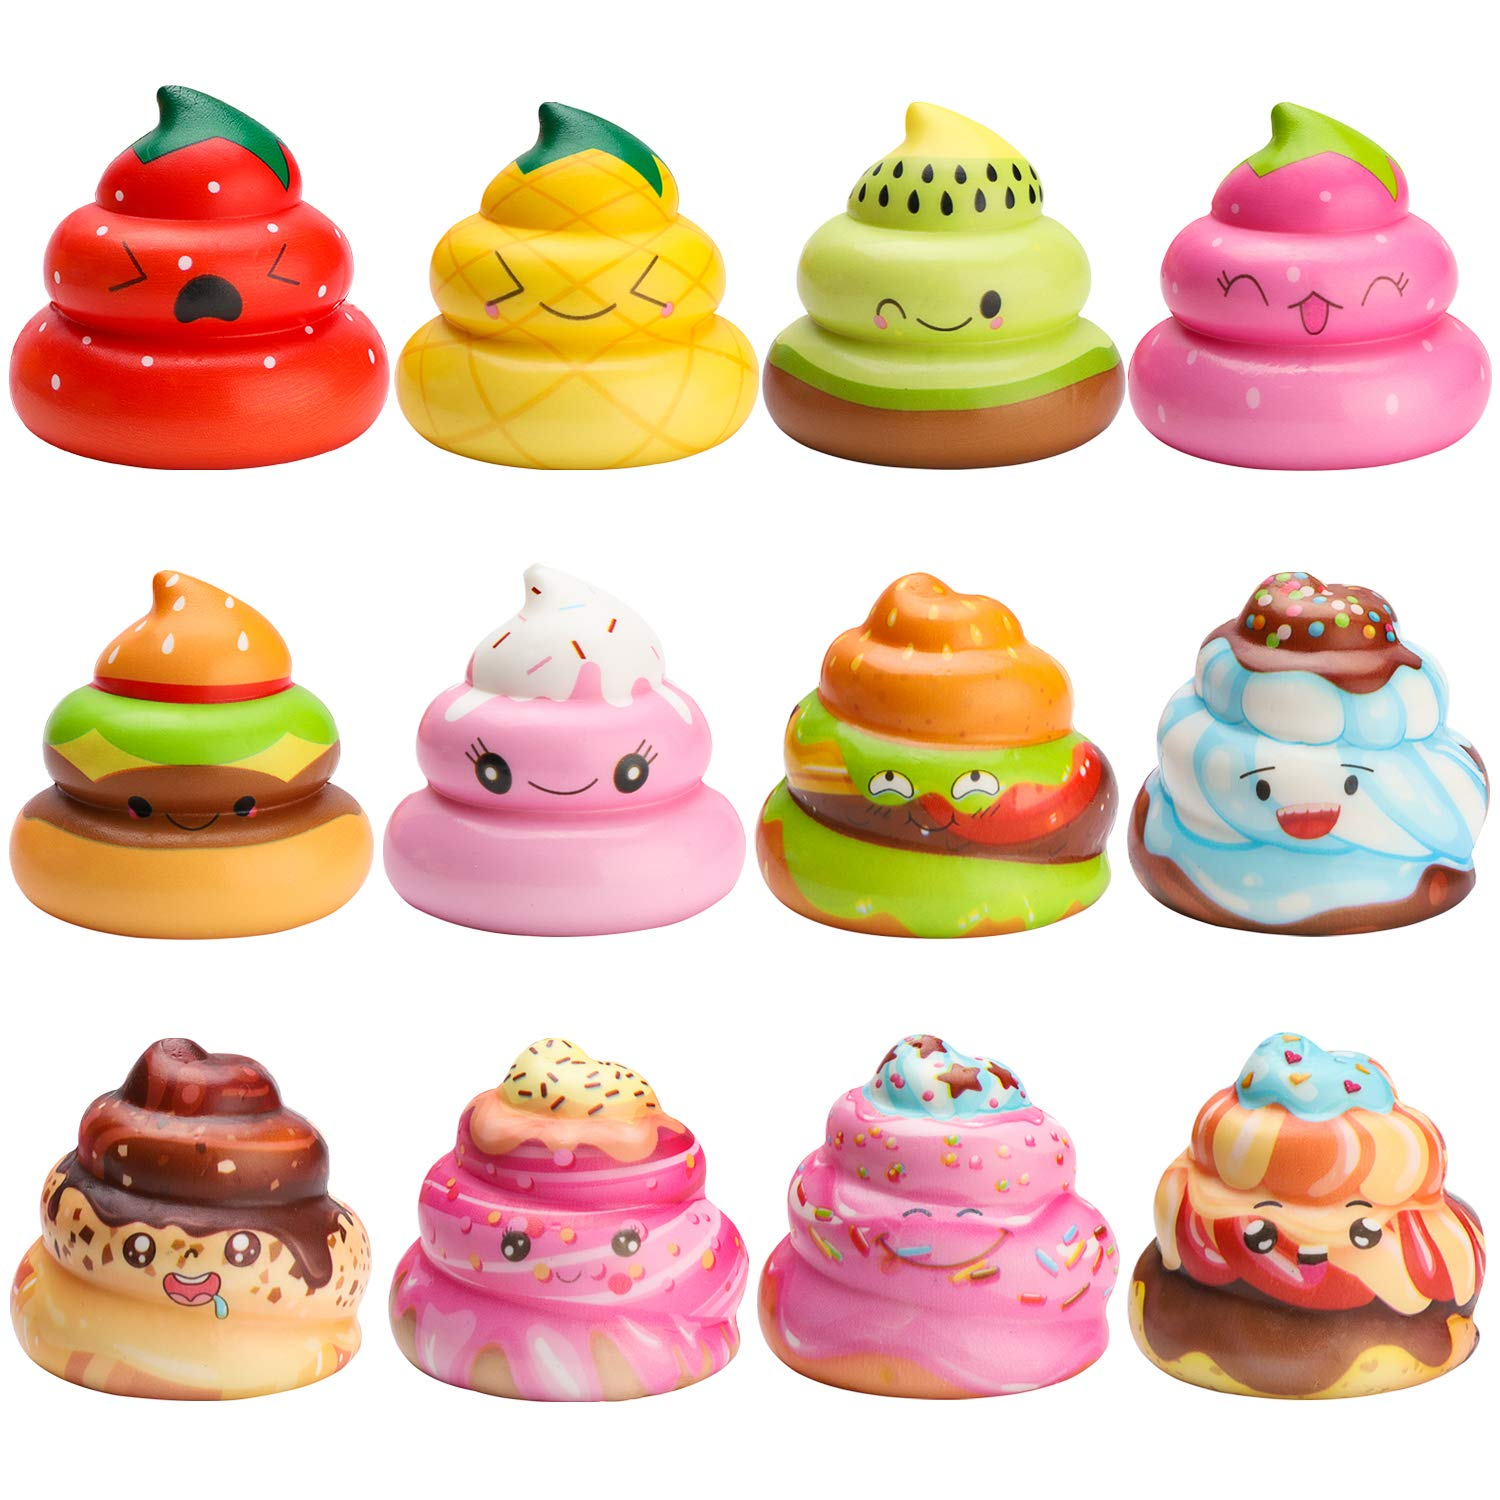 WATINC Random 12 Pcs Kawaii Soft Poo Squishy Cream Scented Stress Relif Toy, Decorative Props Gift Hand Toy for Kids by WATINC